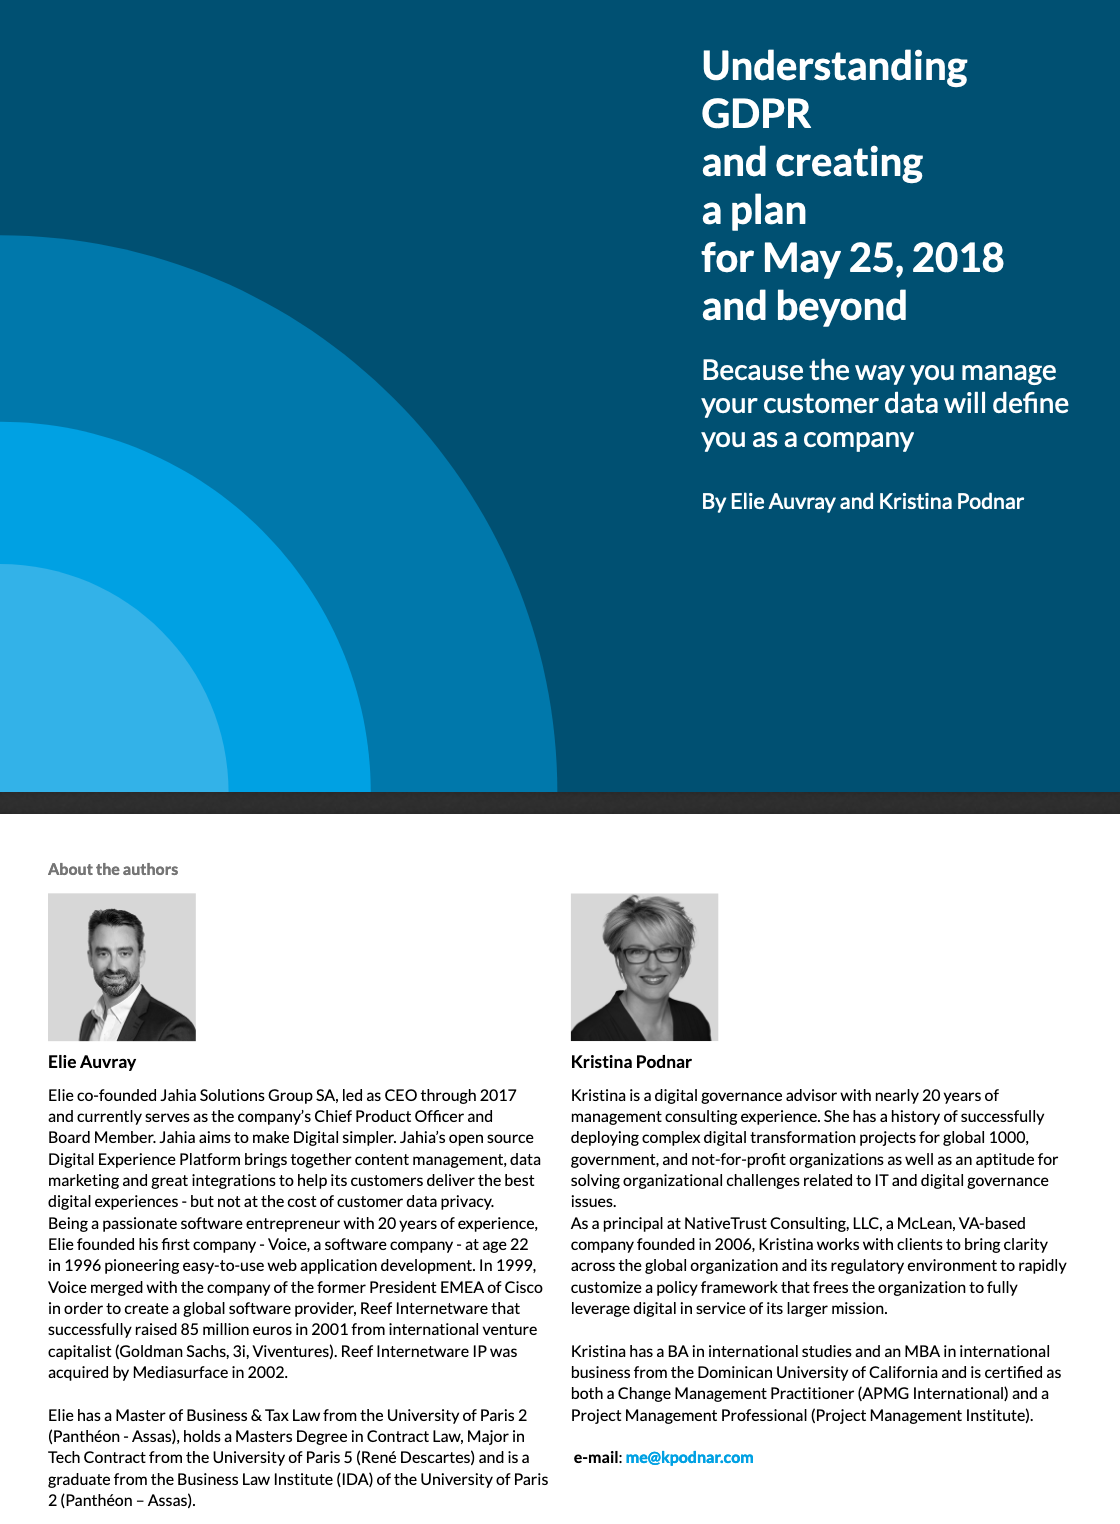 Understanding GDPR and creating a plan for May 25, 2018 and beyond